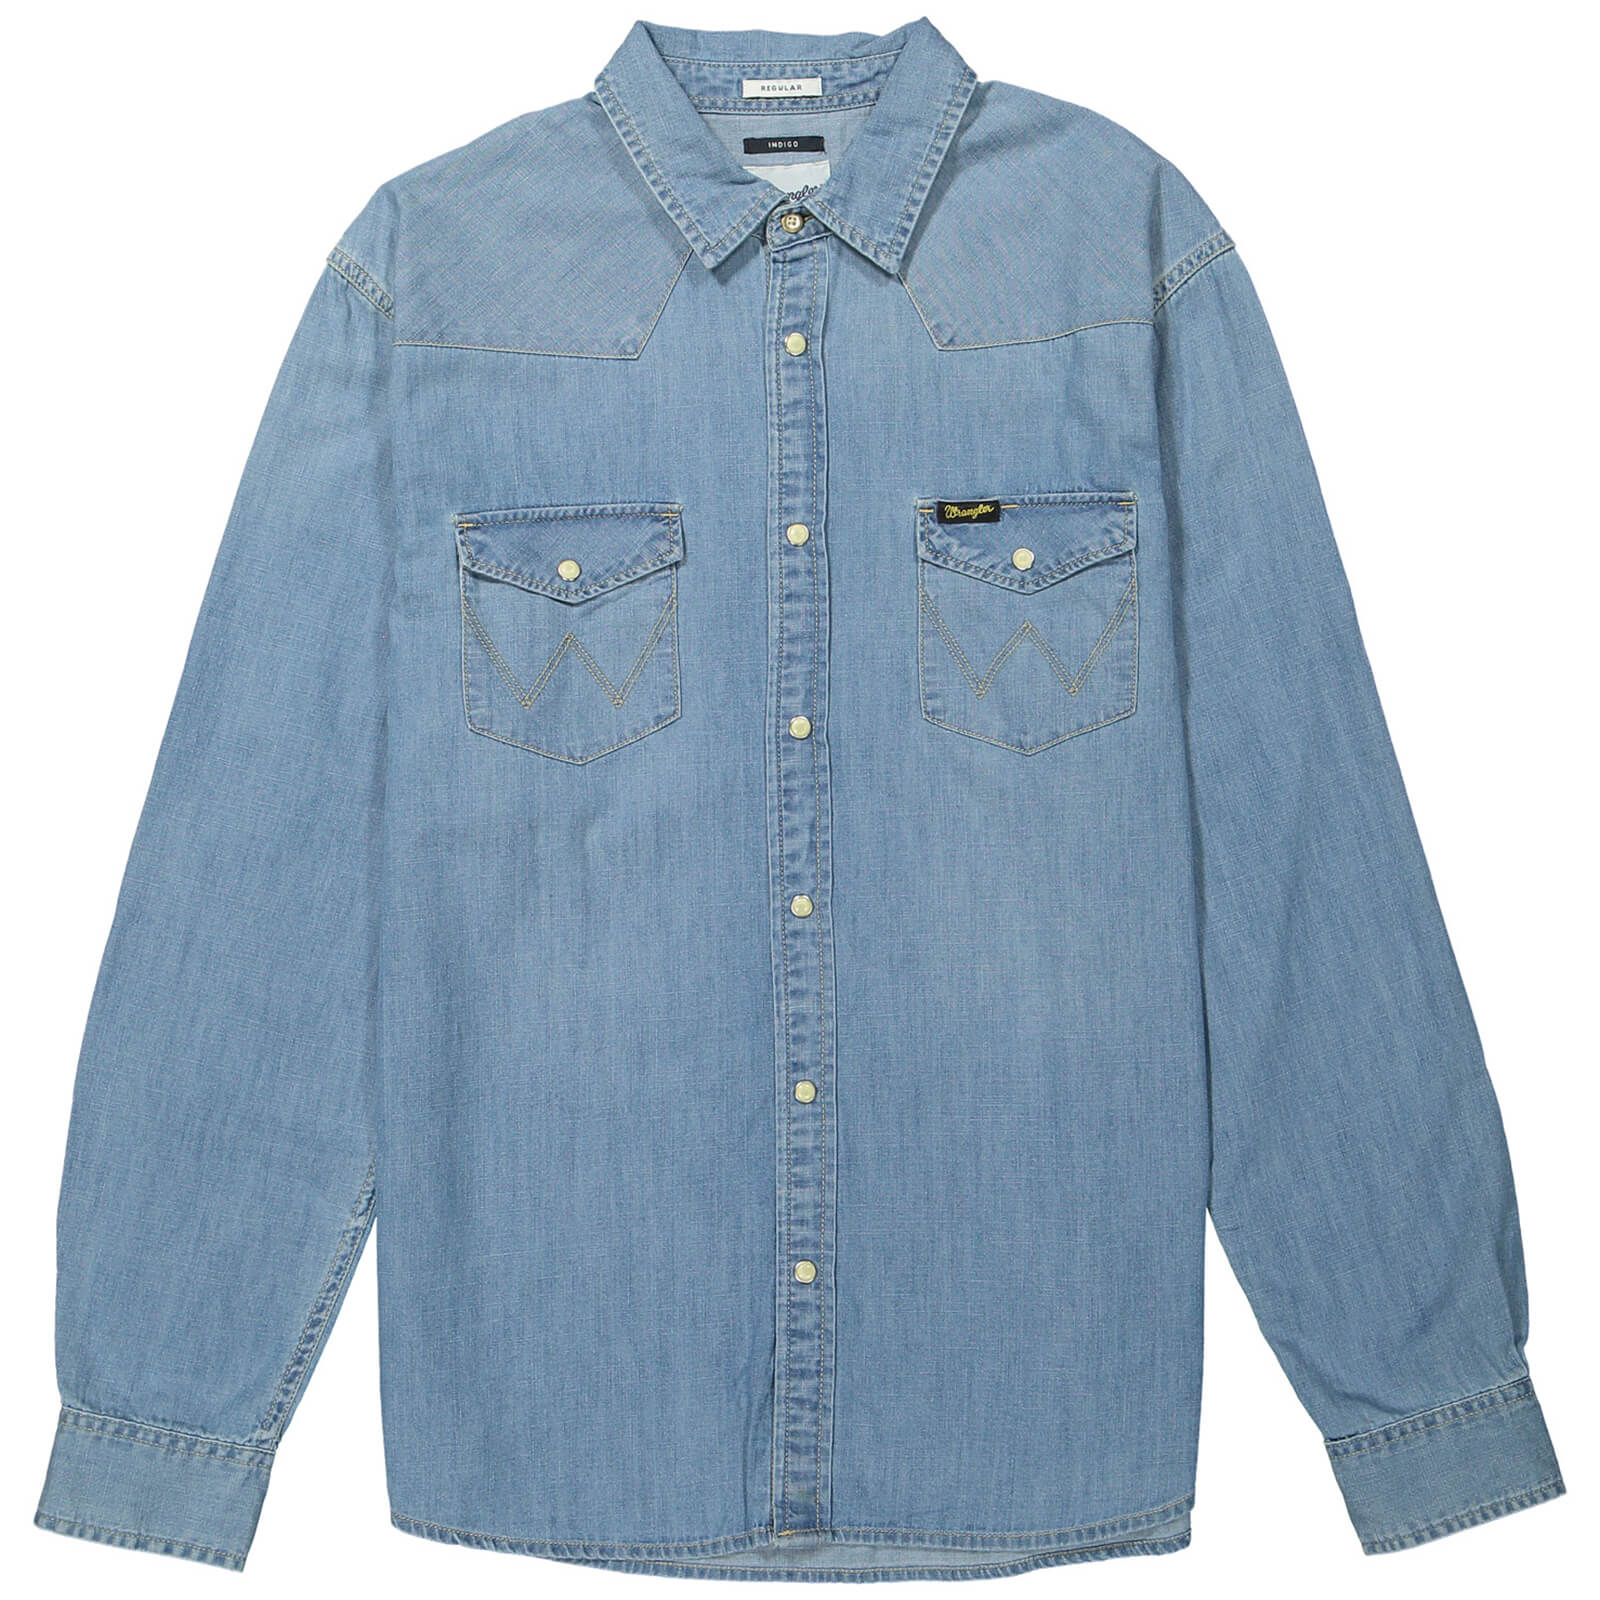 c7a2929ff0c84b Wrangler Men's Western Denim Shirt - Light Indigo Mens Clothing | Zavvi